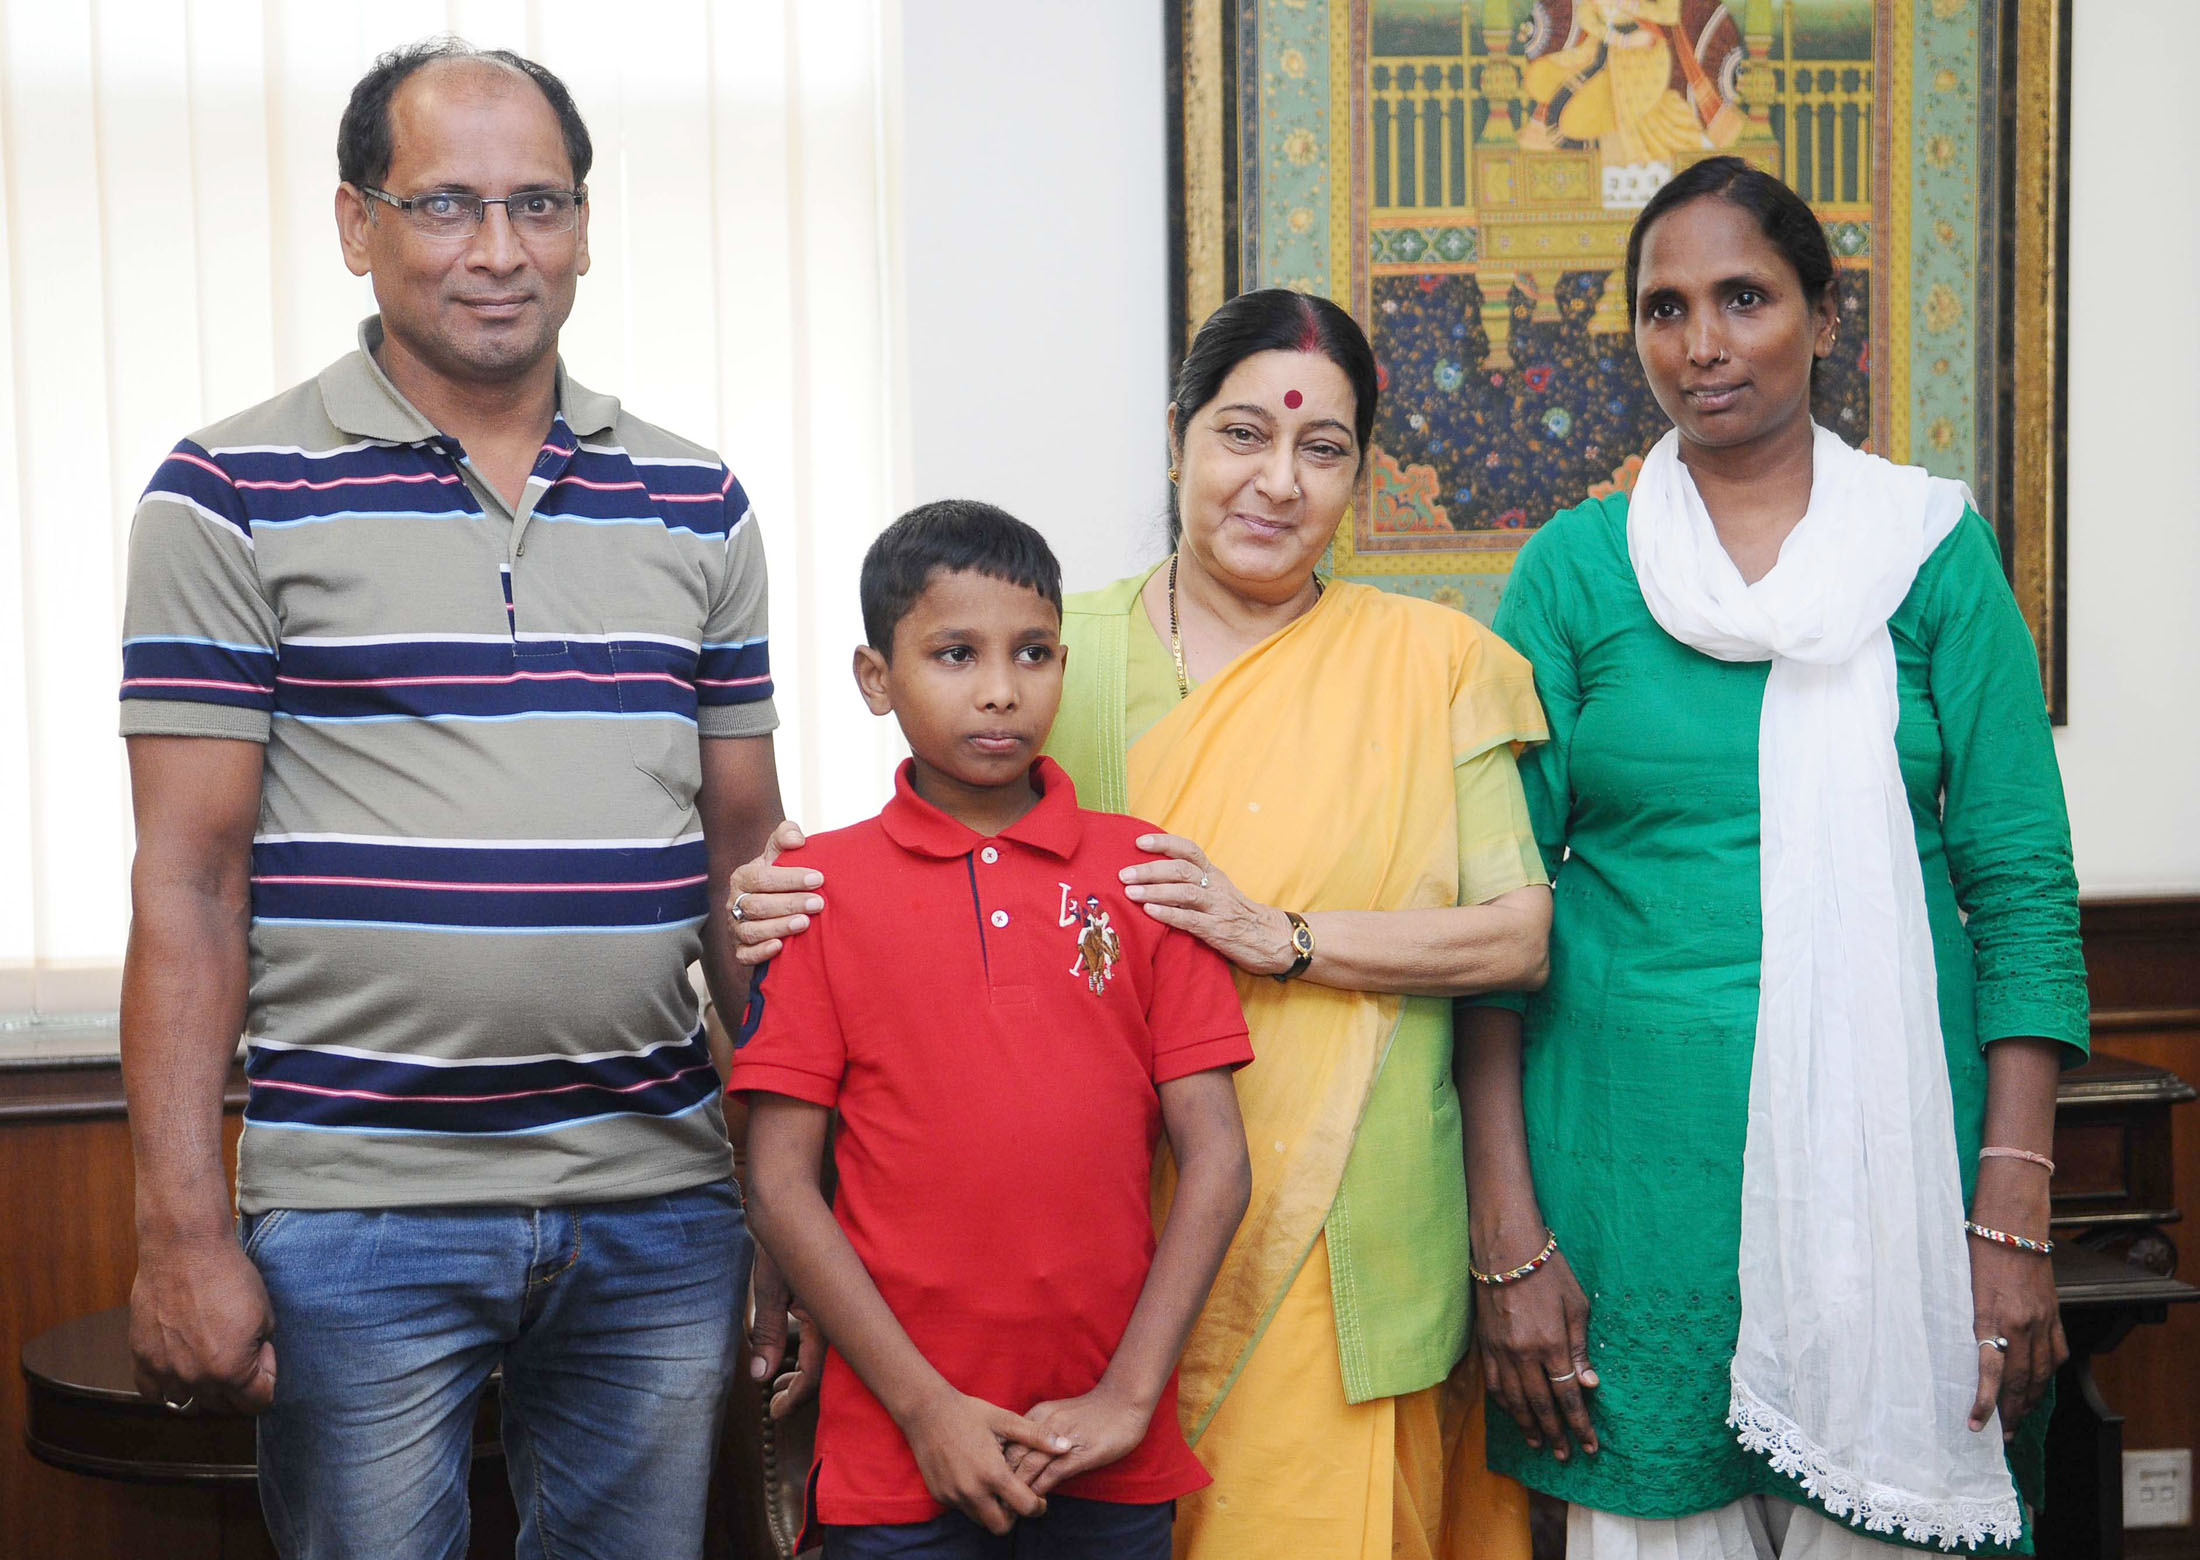 Union Minister for External Affairs Sushma Swaraj welcoming the young boy Sonu returned from Bangladesh, in New Delhi on June 30, 2016 Photo courtesy: Press Information Bureau/MEA